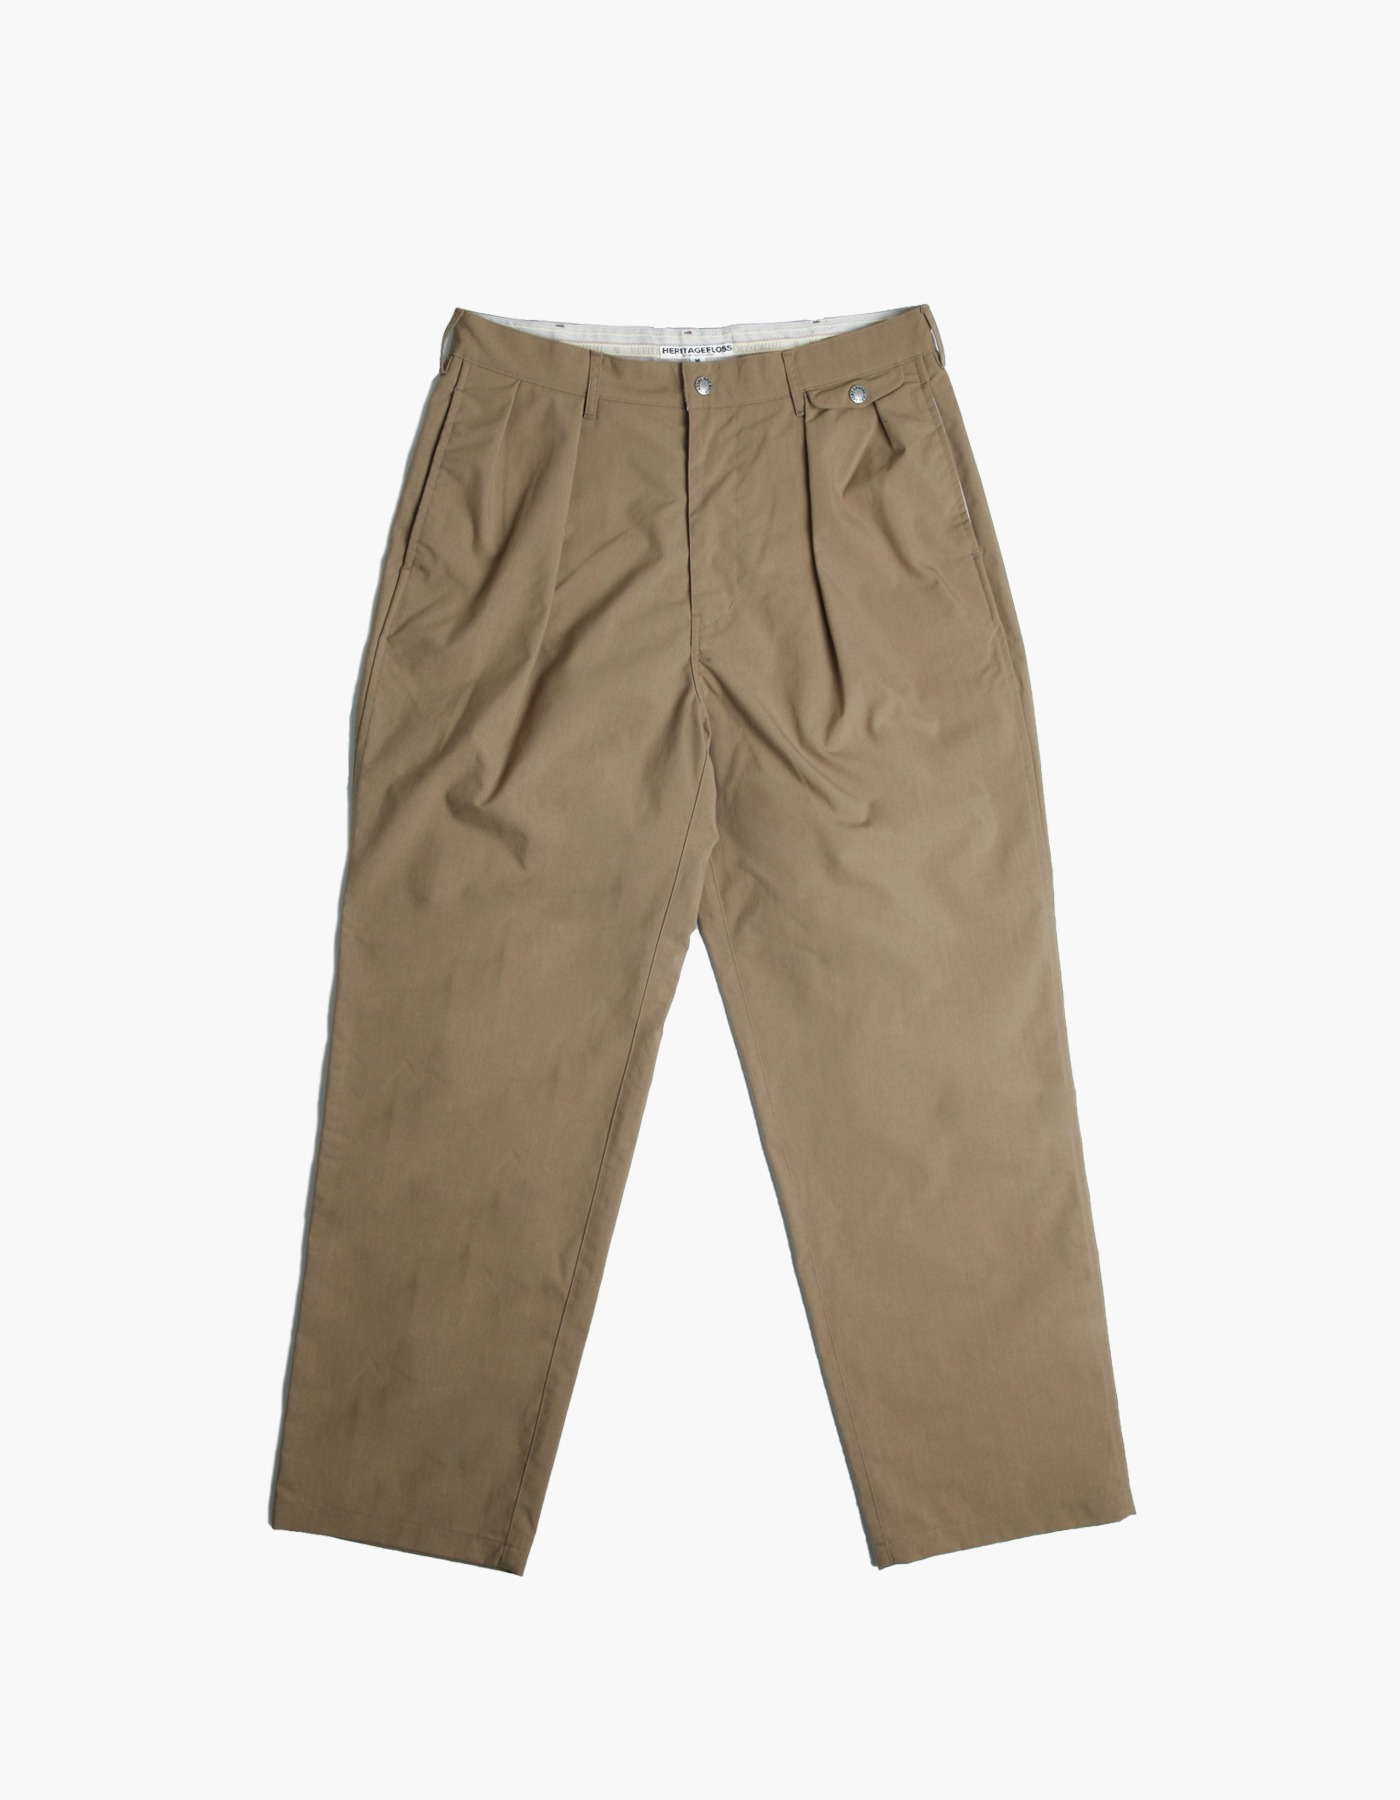 QUICK-DRYING NYLON CHINO PANTS / BEIGE